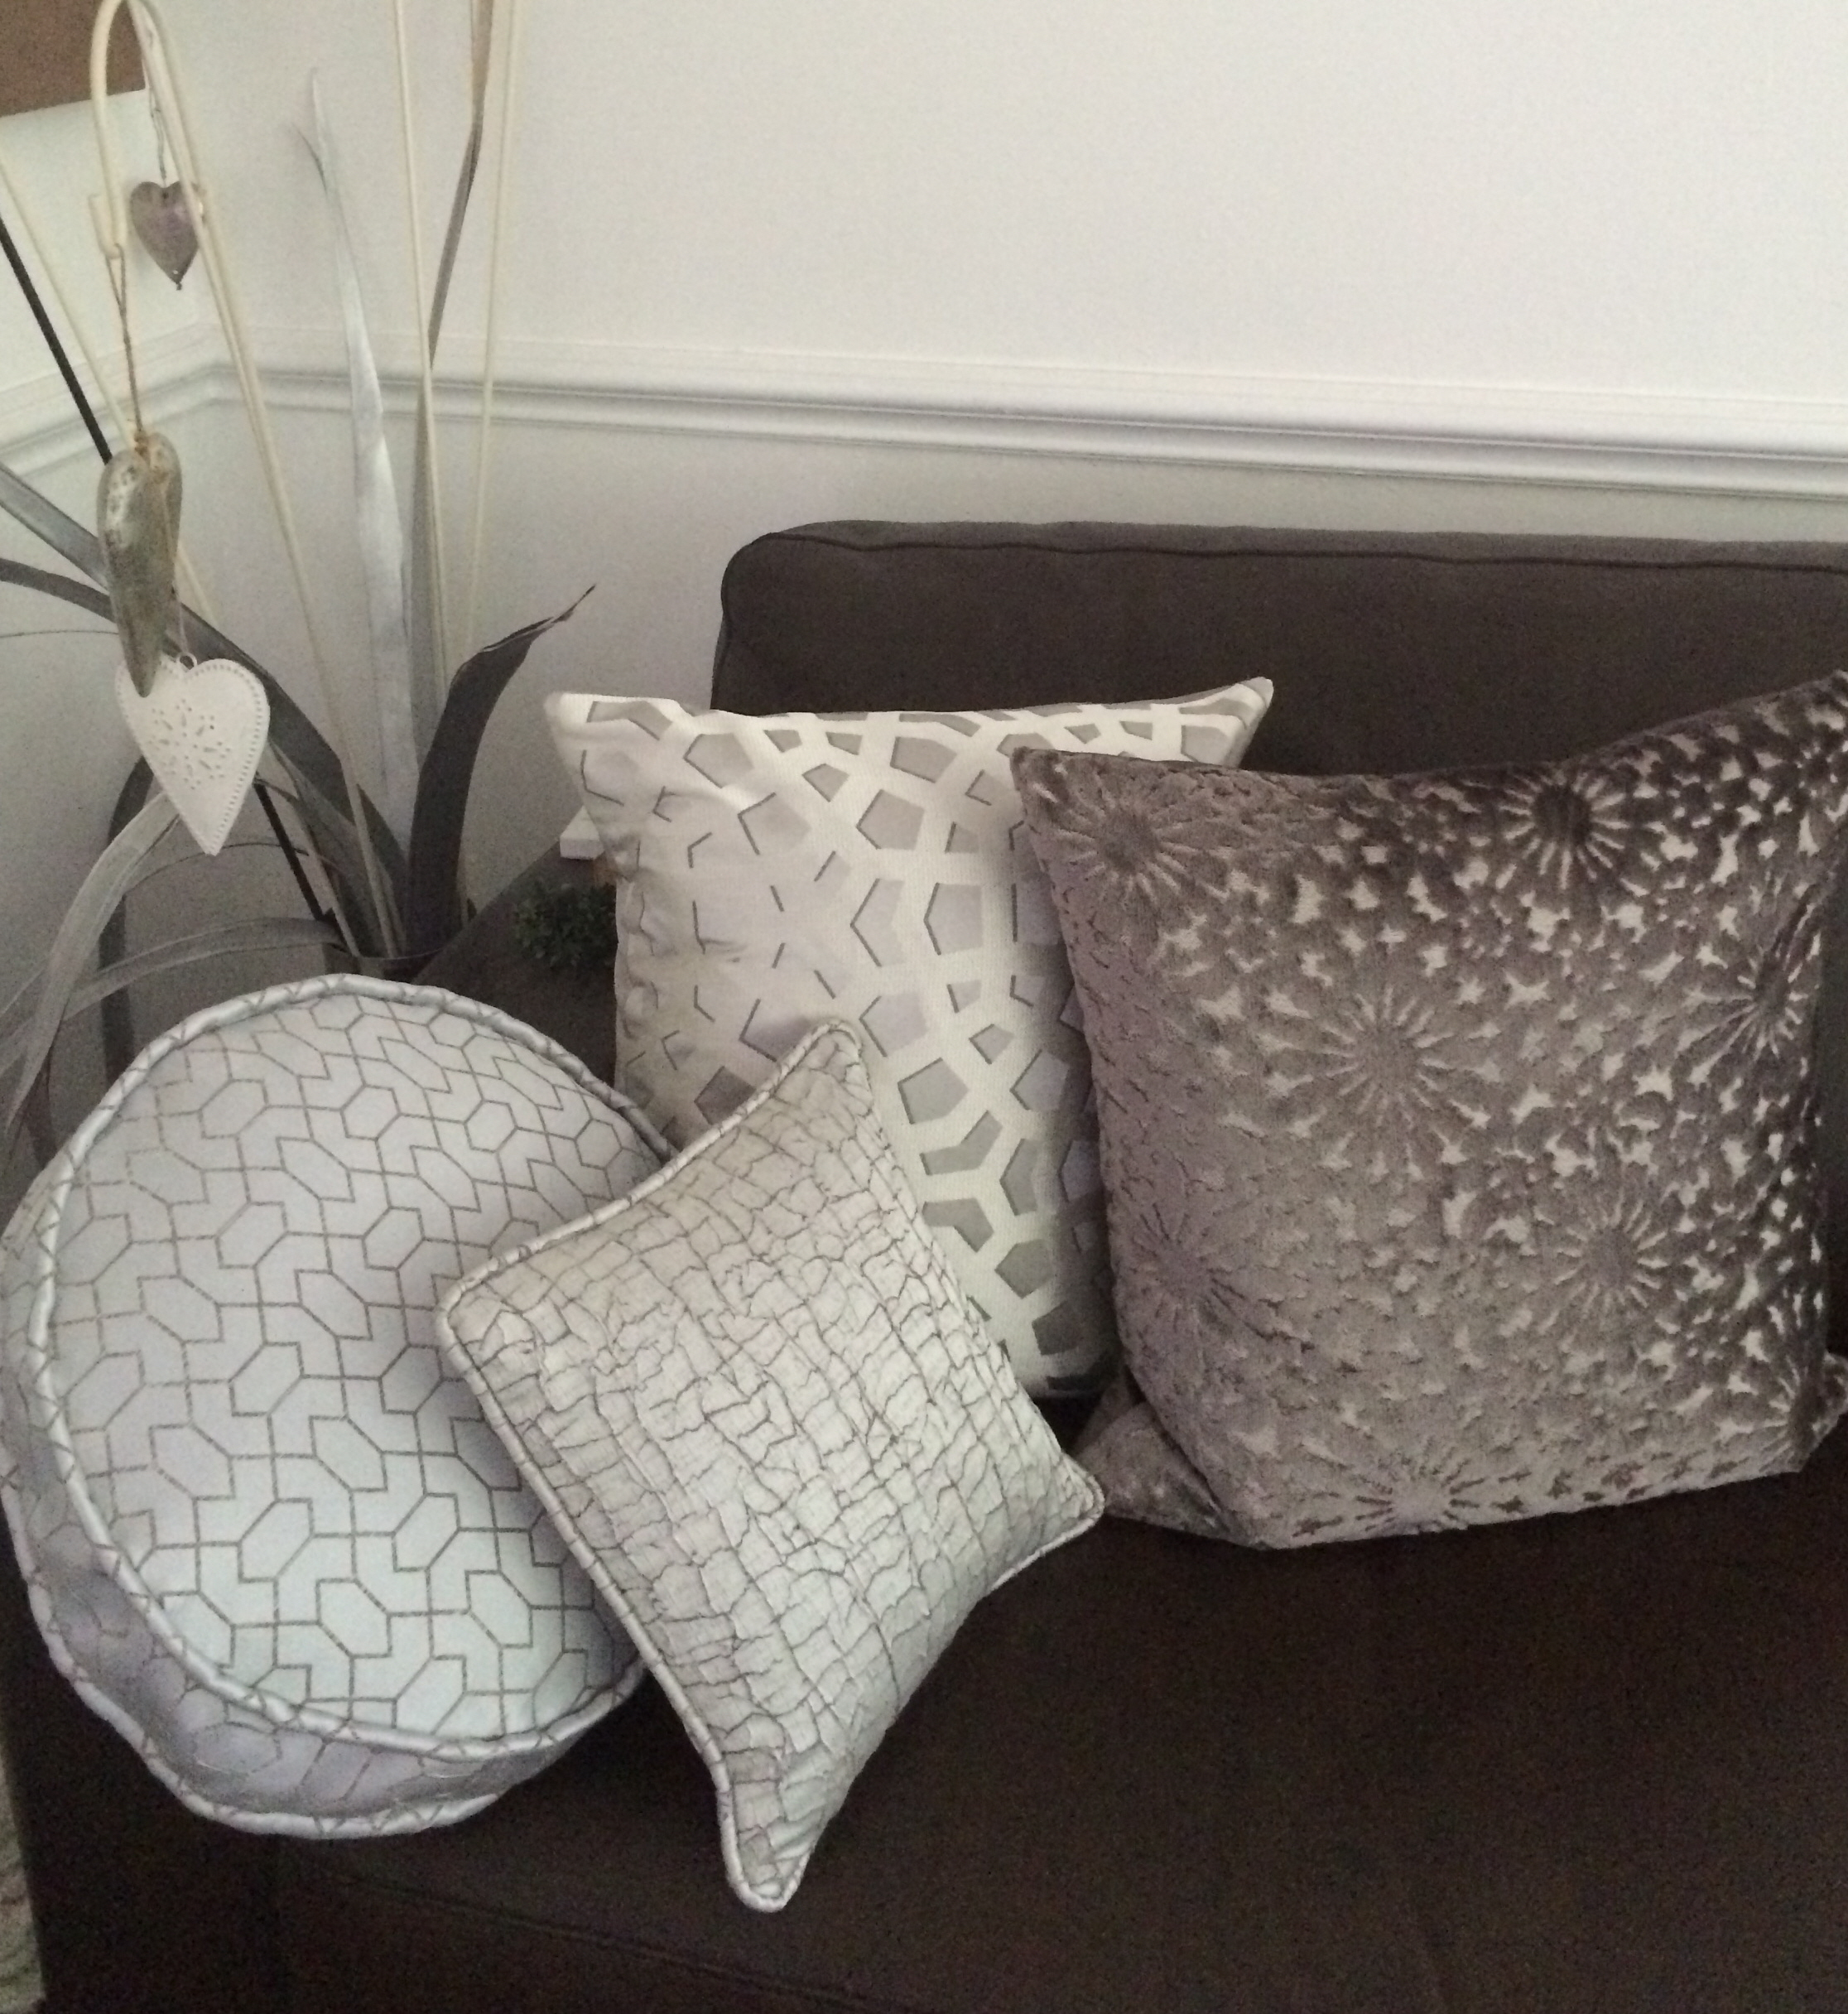 Cushions-from-Znc--Black-Edition--Romo-and-James-Hare---Resize.jpg